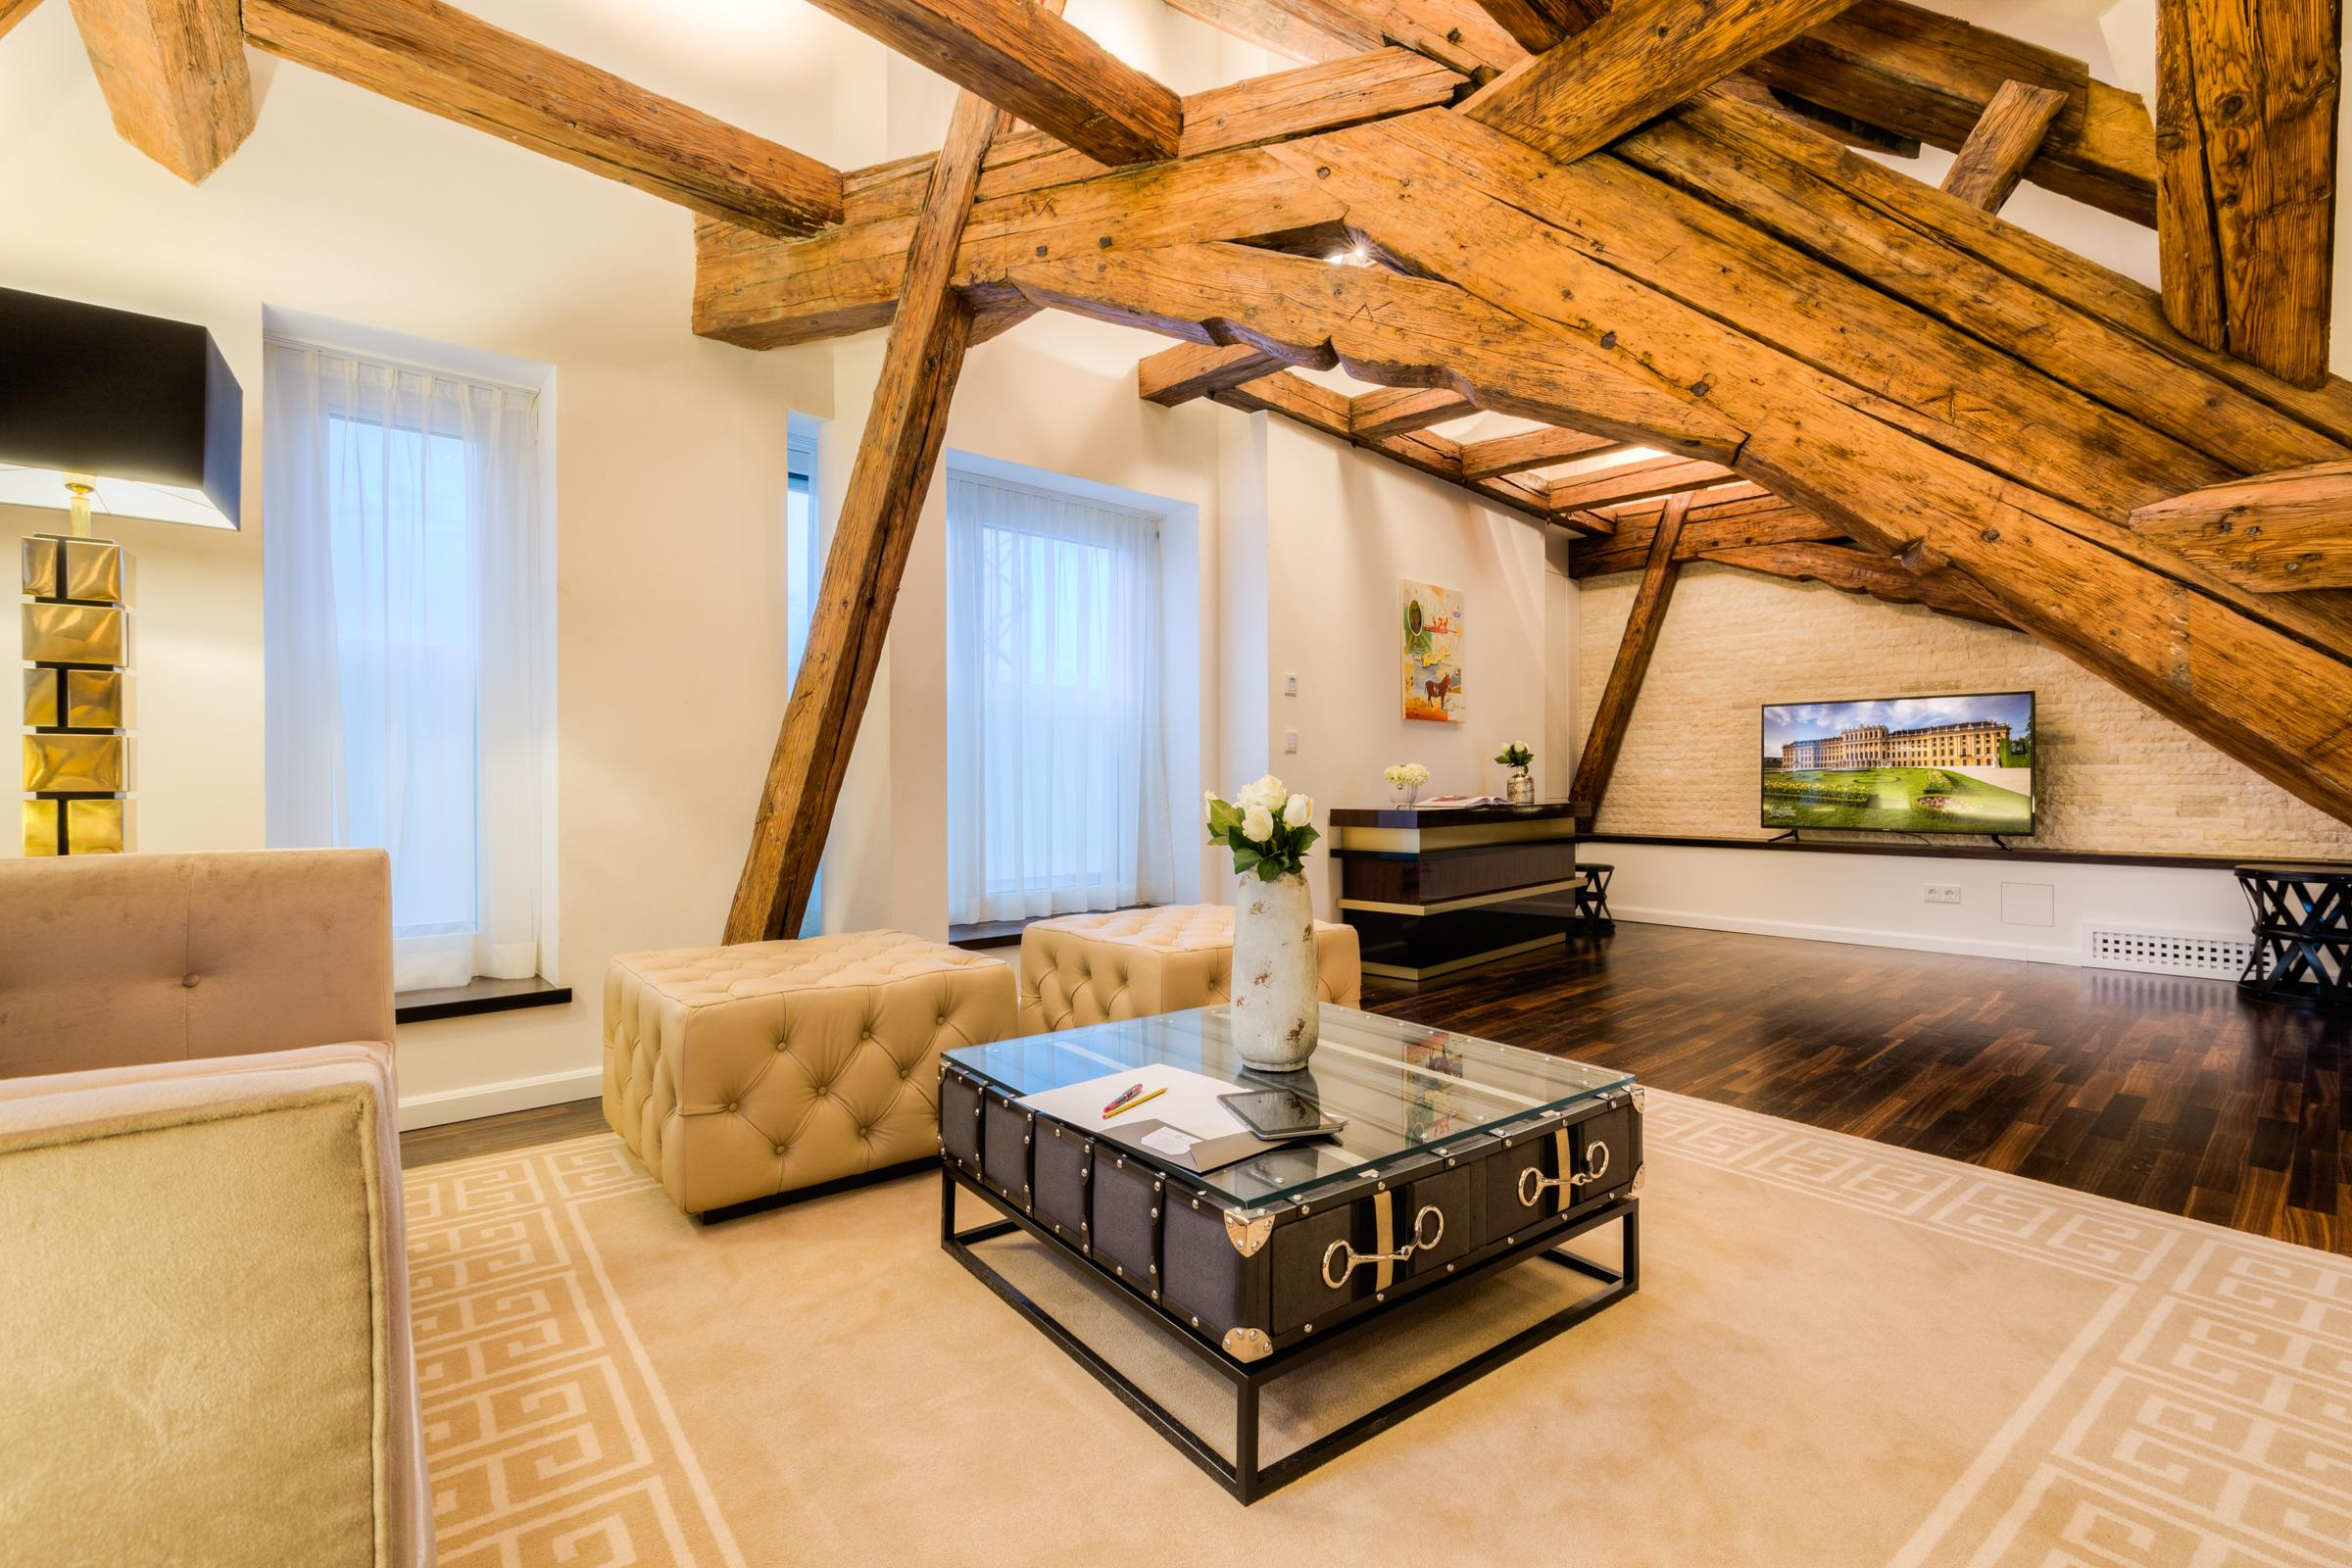 KirchgasserPhotography Luxury Apartments Residenz Wollzeile Interieurfotografie 14 2400px